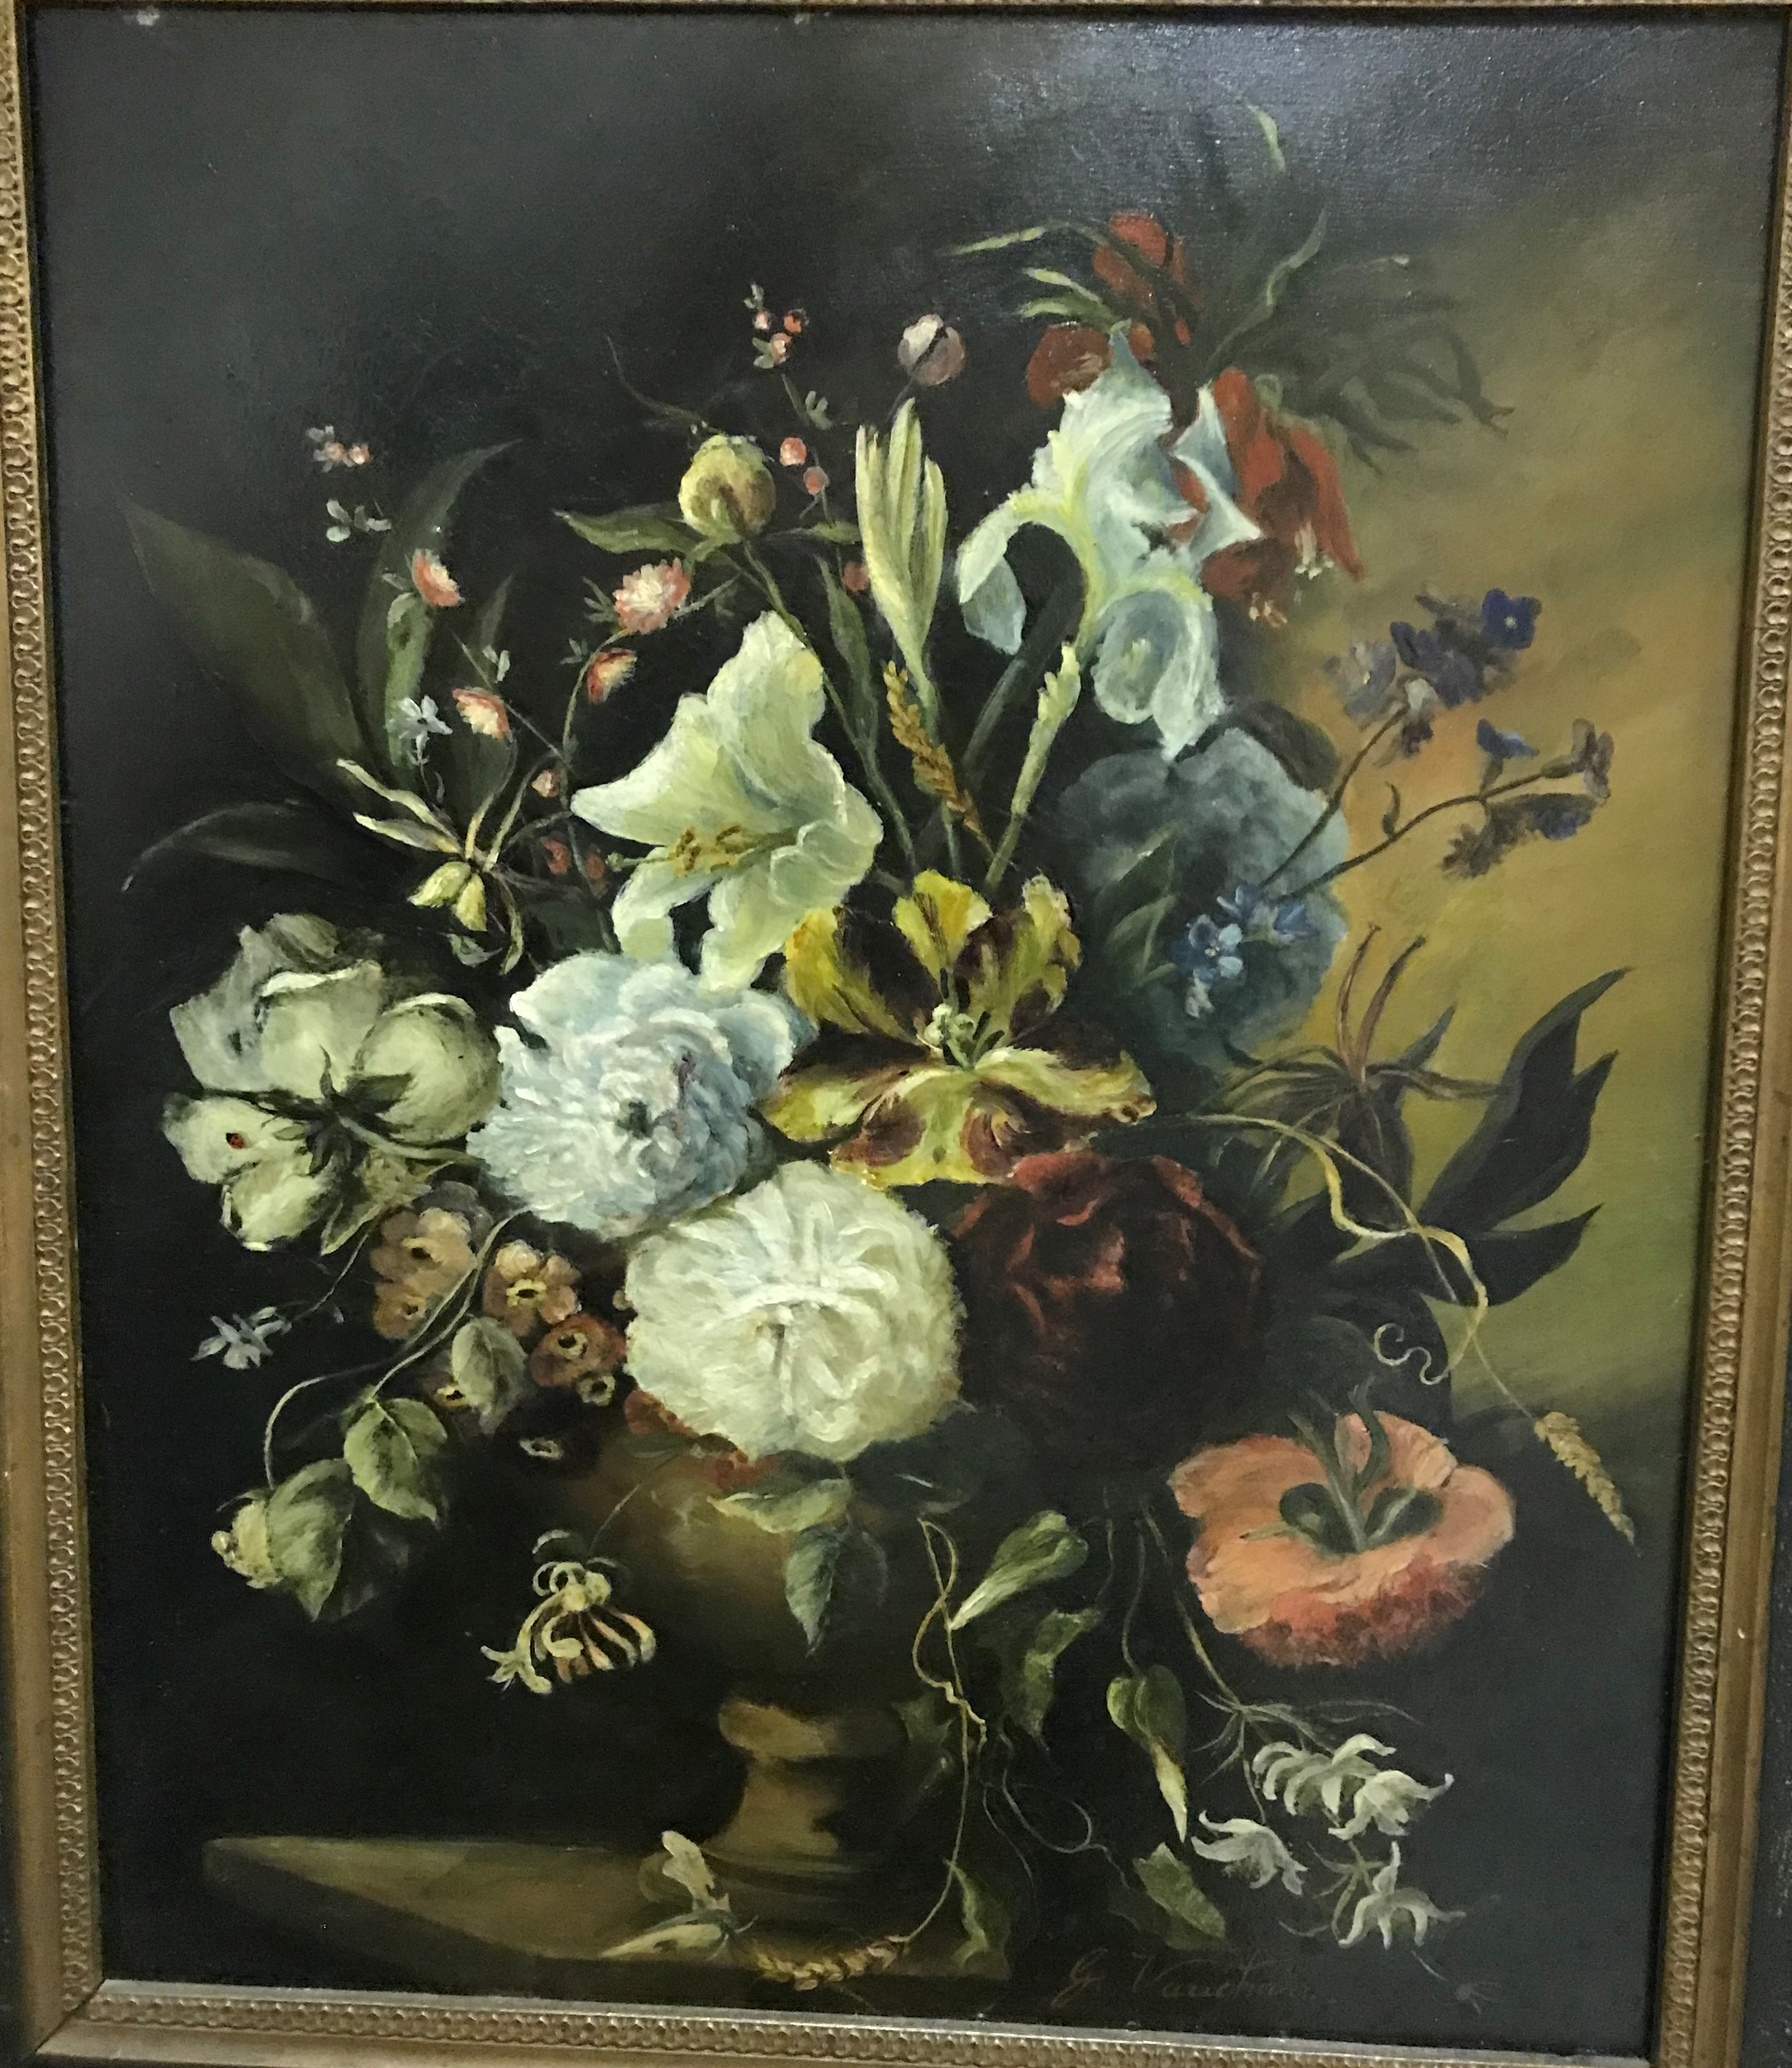 """G VAUGHAN """"Still life study of flowers in vase on a stone ledge"""" signed lower right, oil on panel"""